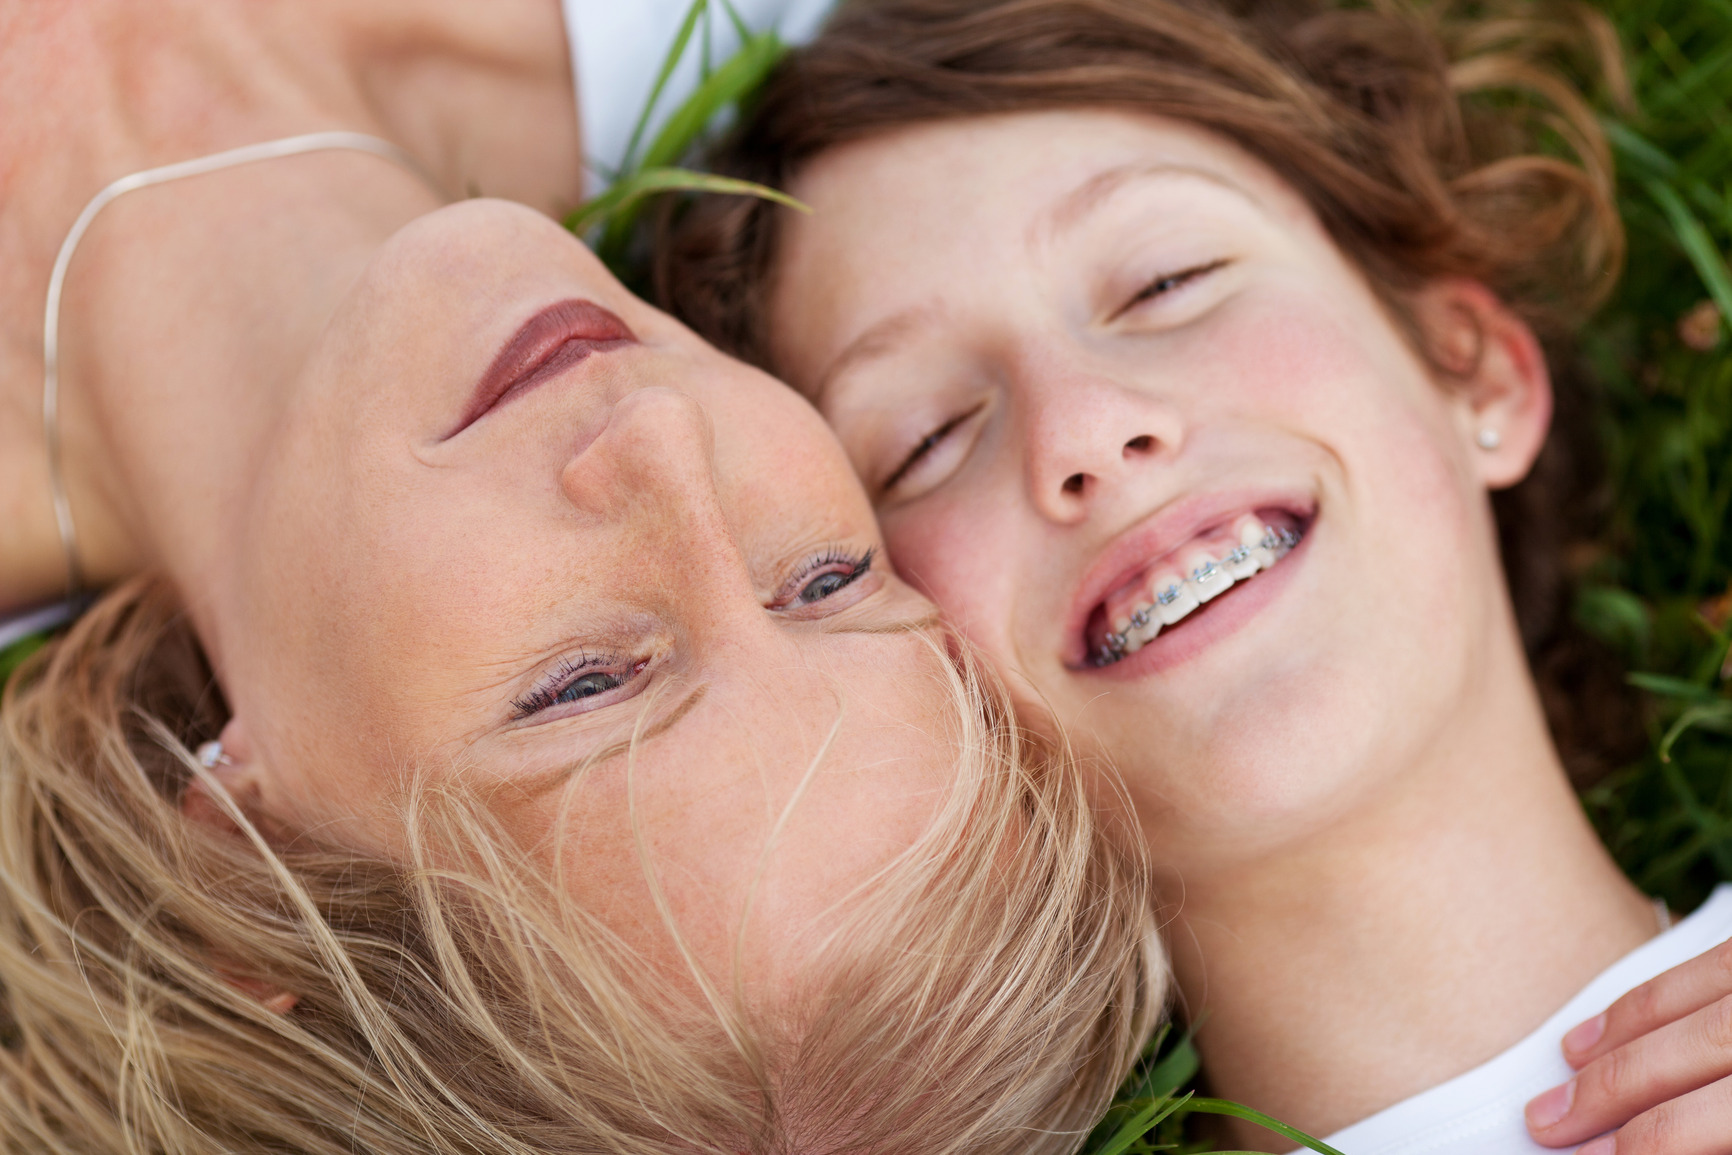 photodune-5127456-mother-and-daughter-lying-close-together-m-2